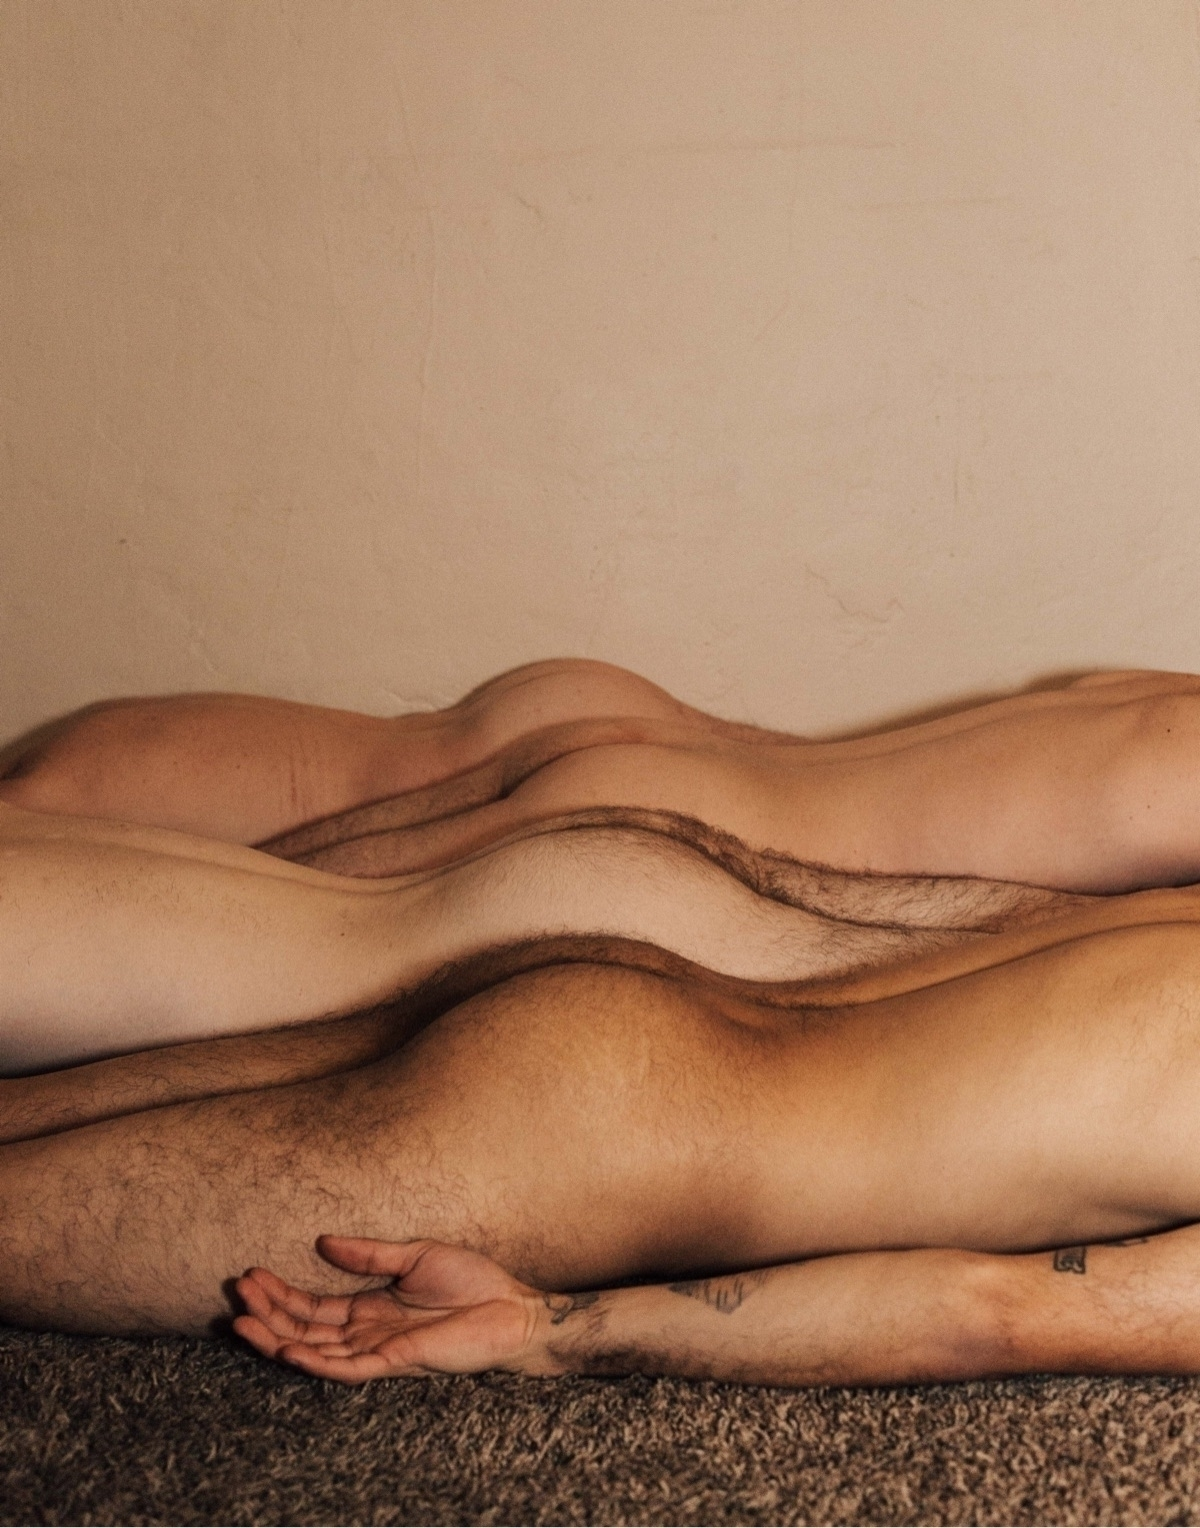 bodies, conceptual, photography - nomoreimages | ello